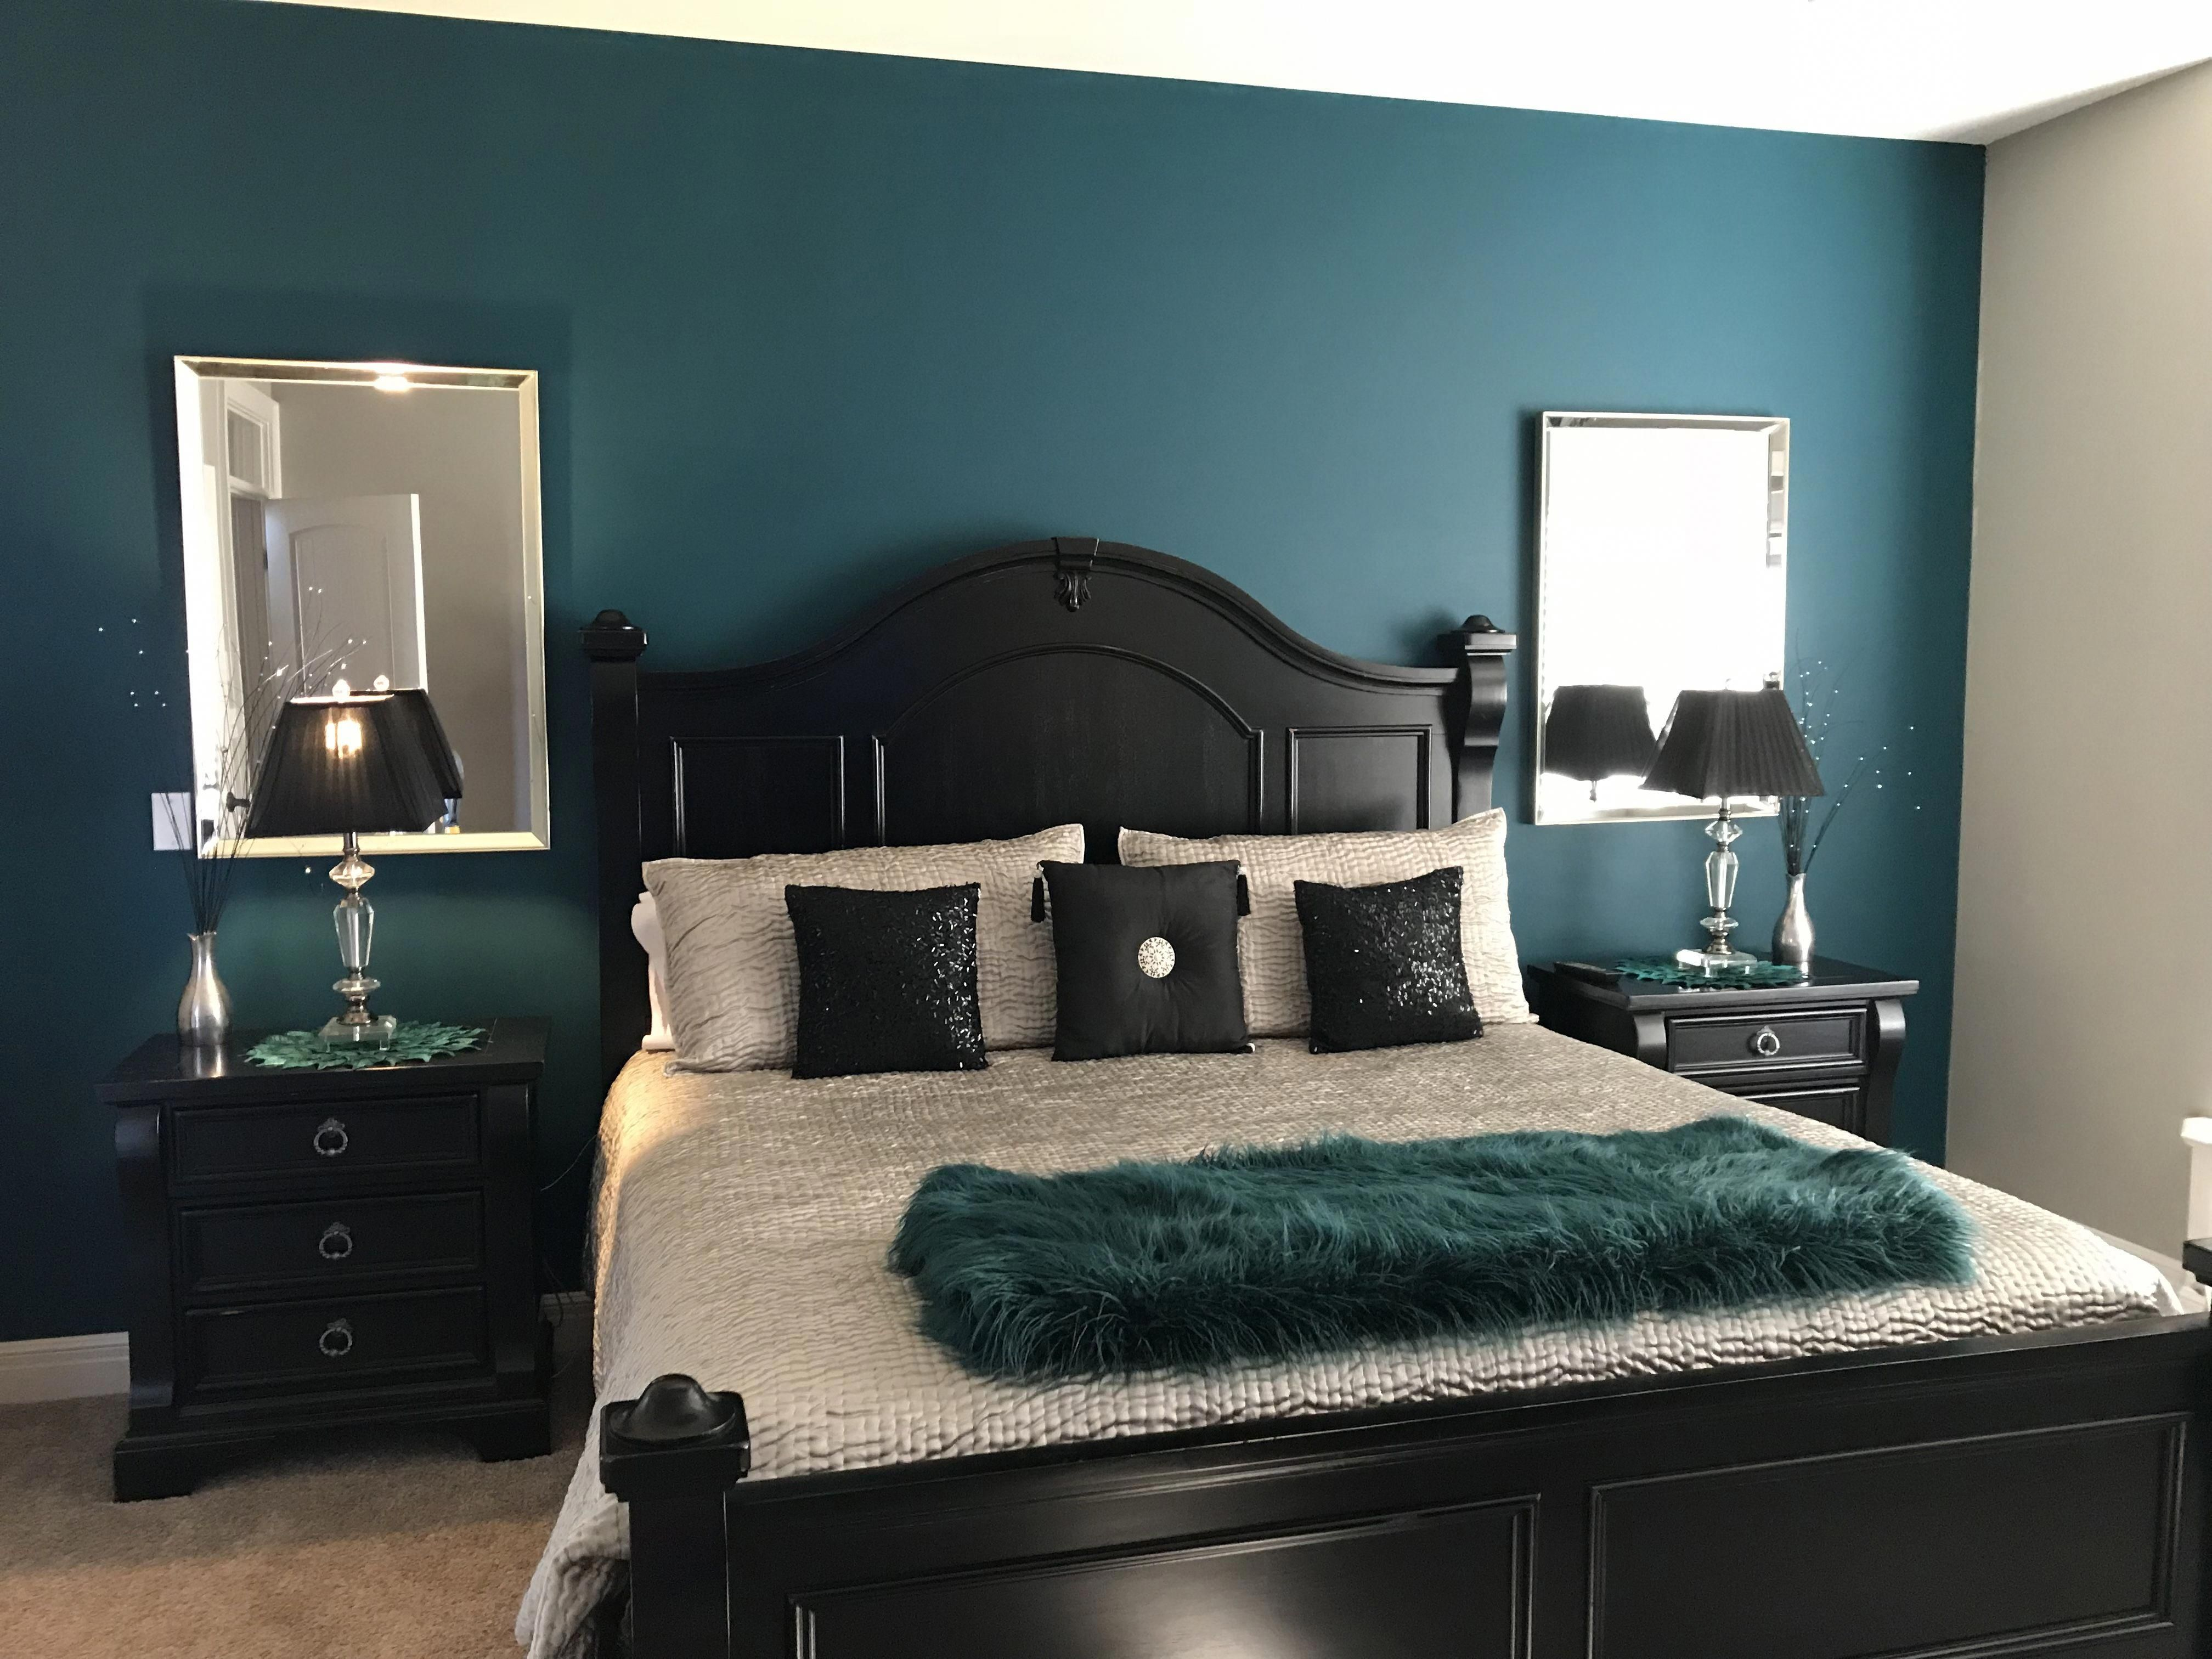 Bedroom Ideas - A magnificent reference on bedroom design ... on Bedroom Reference  id=35451